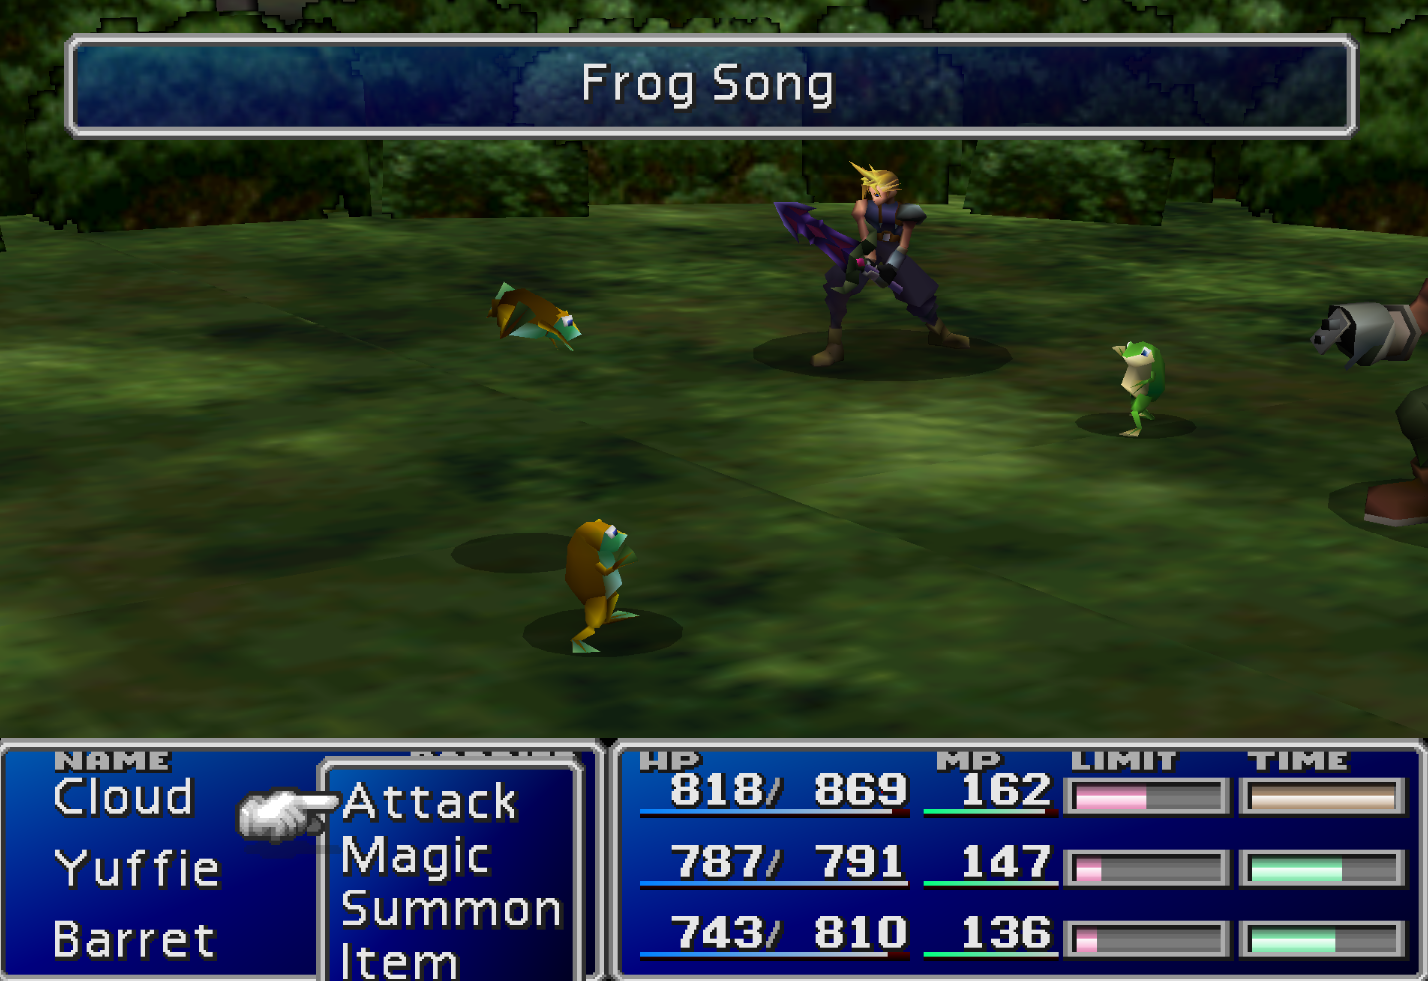 Frog Song Enemy Skill